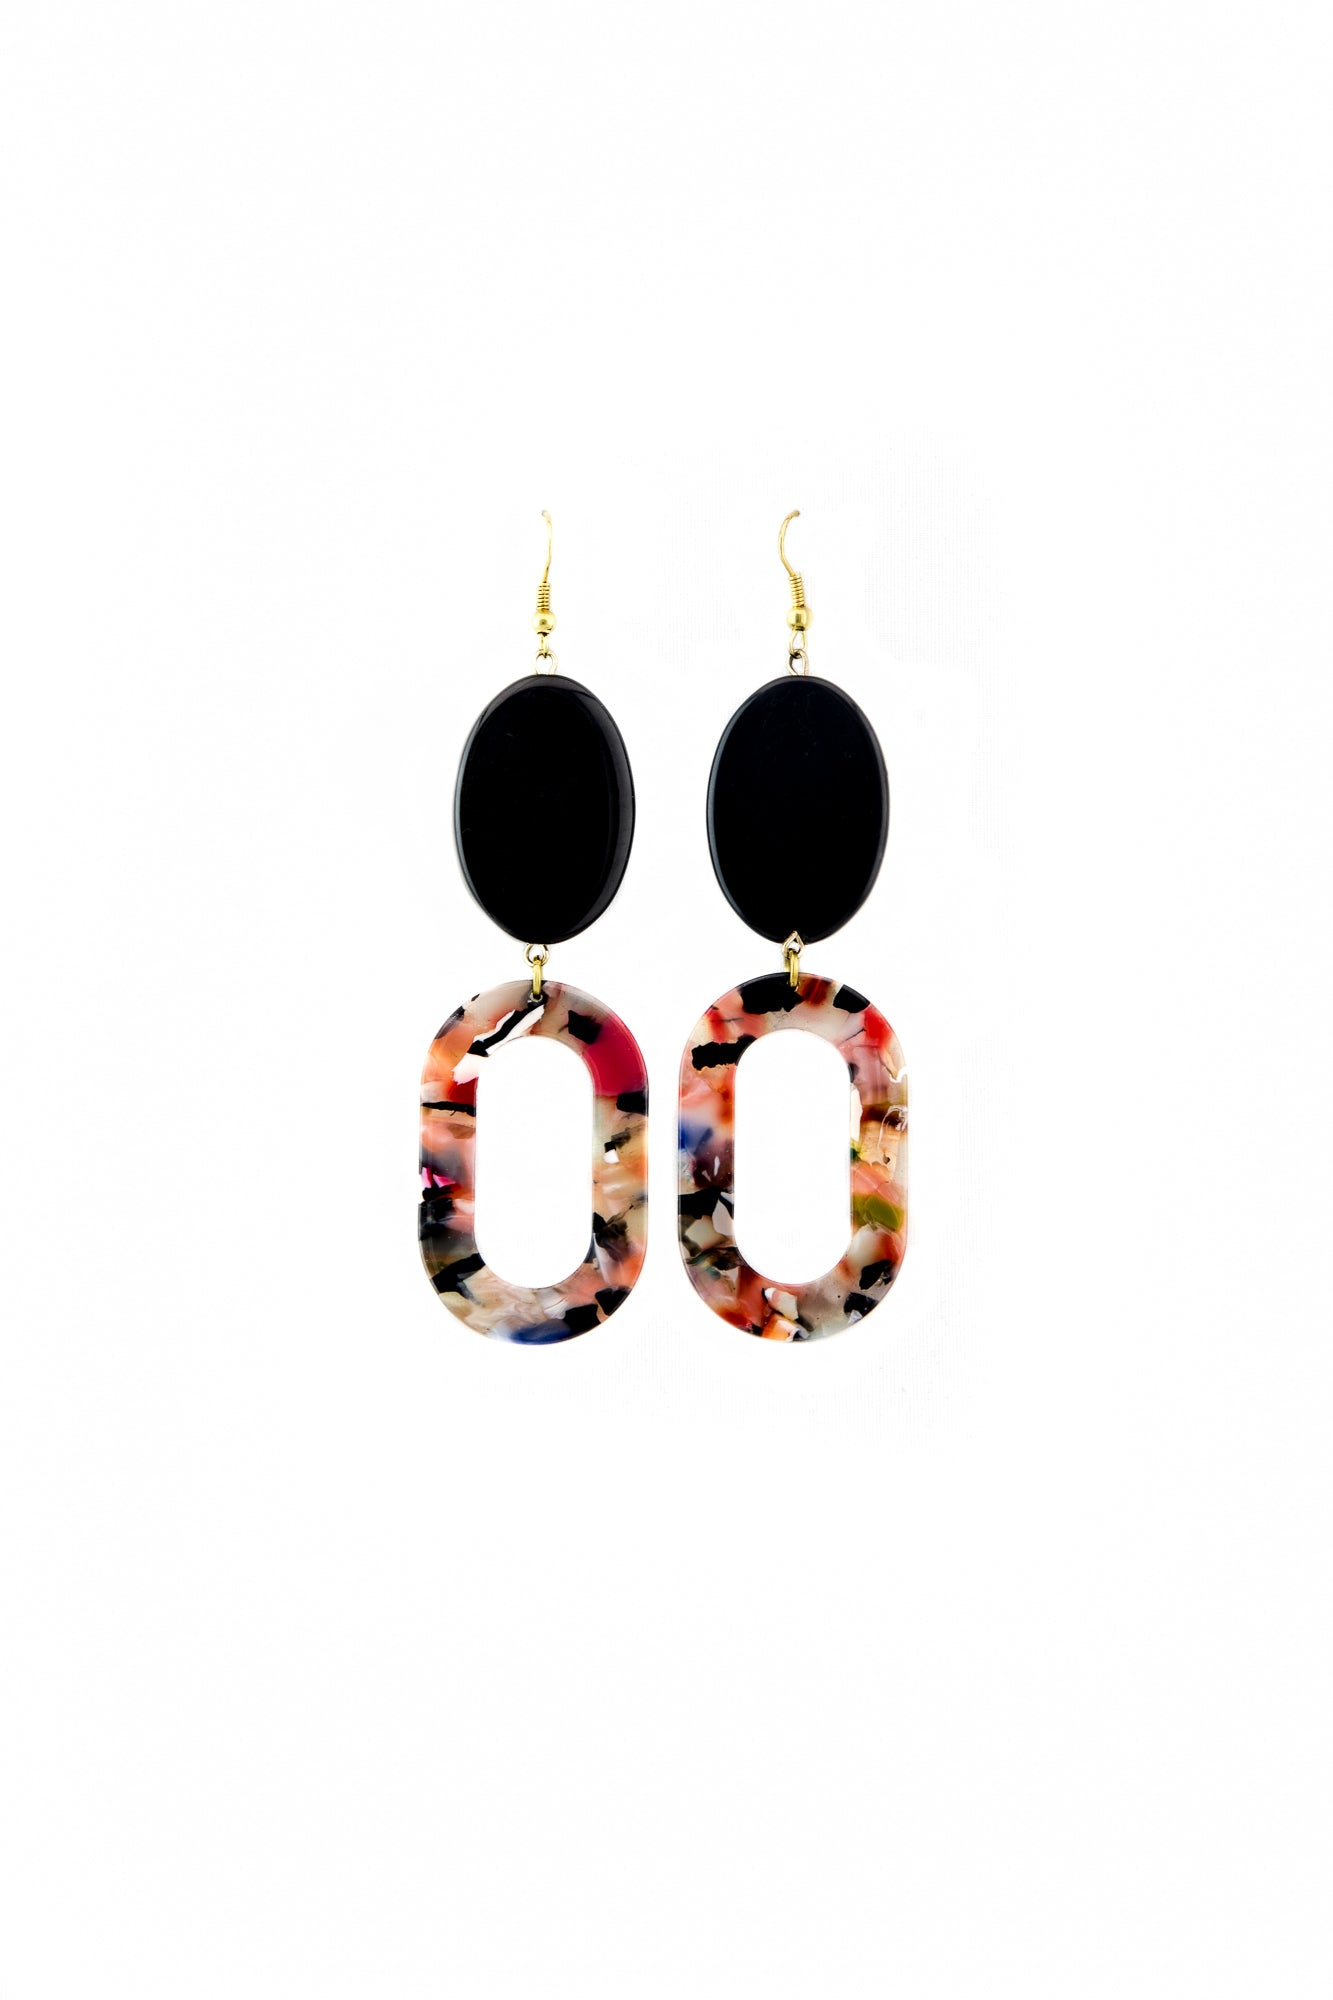 Black onyx floral earrings